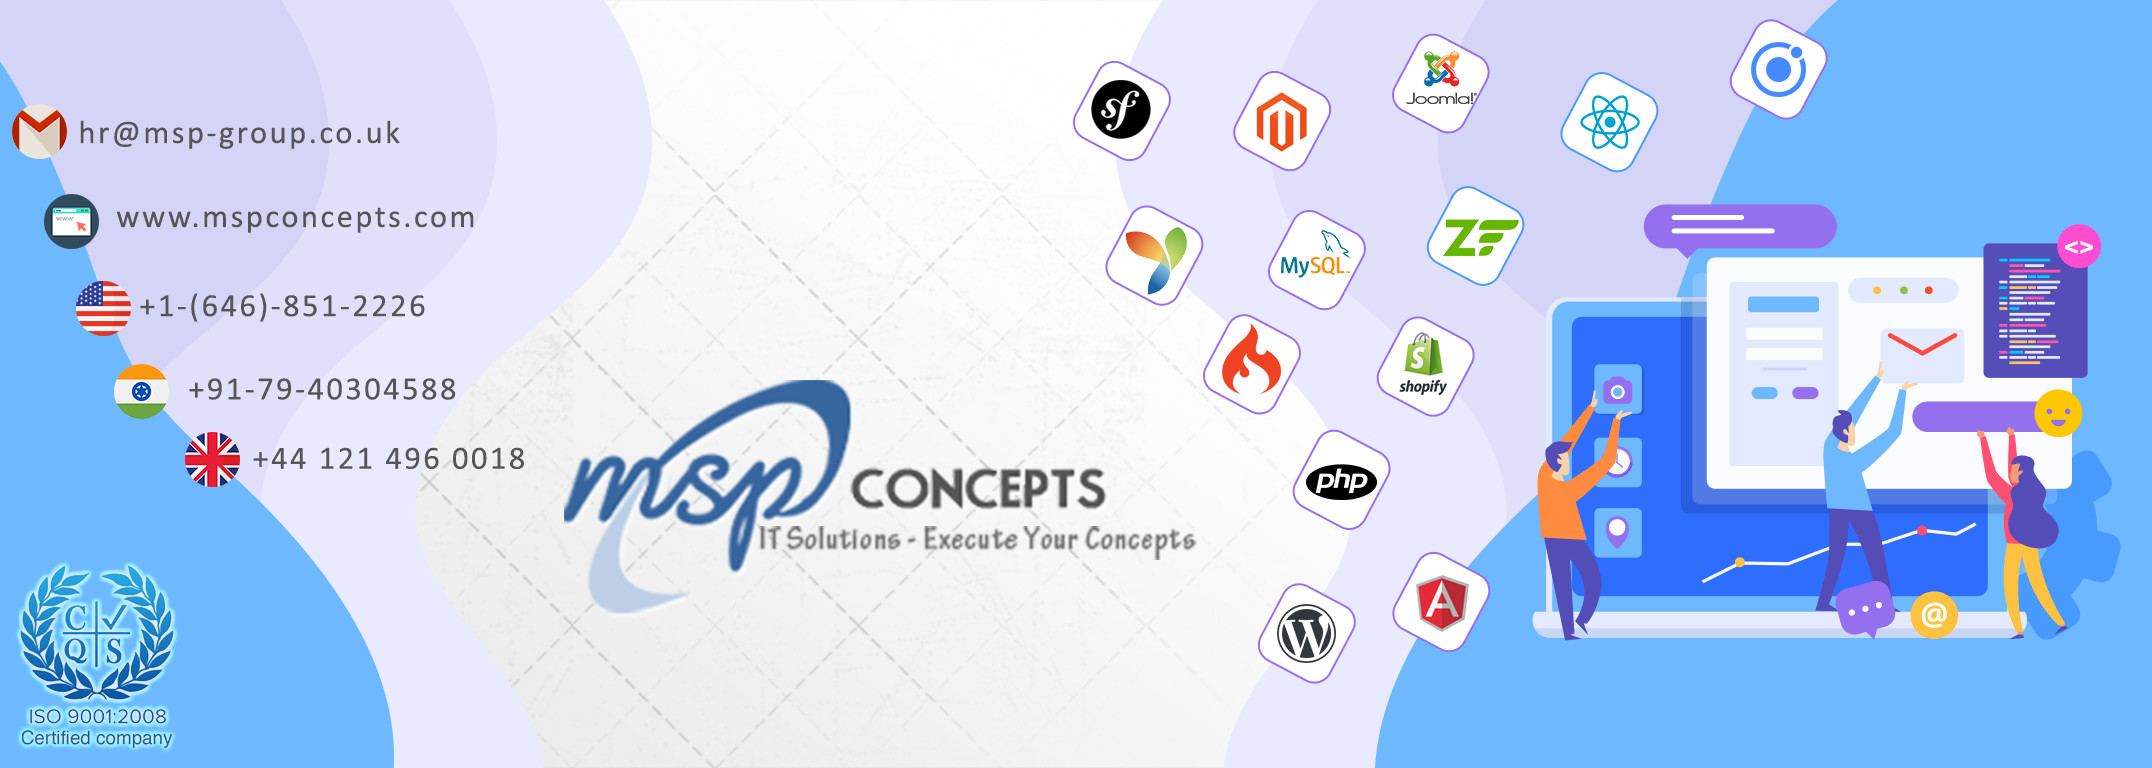 PHP Development Company.